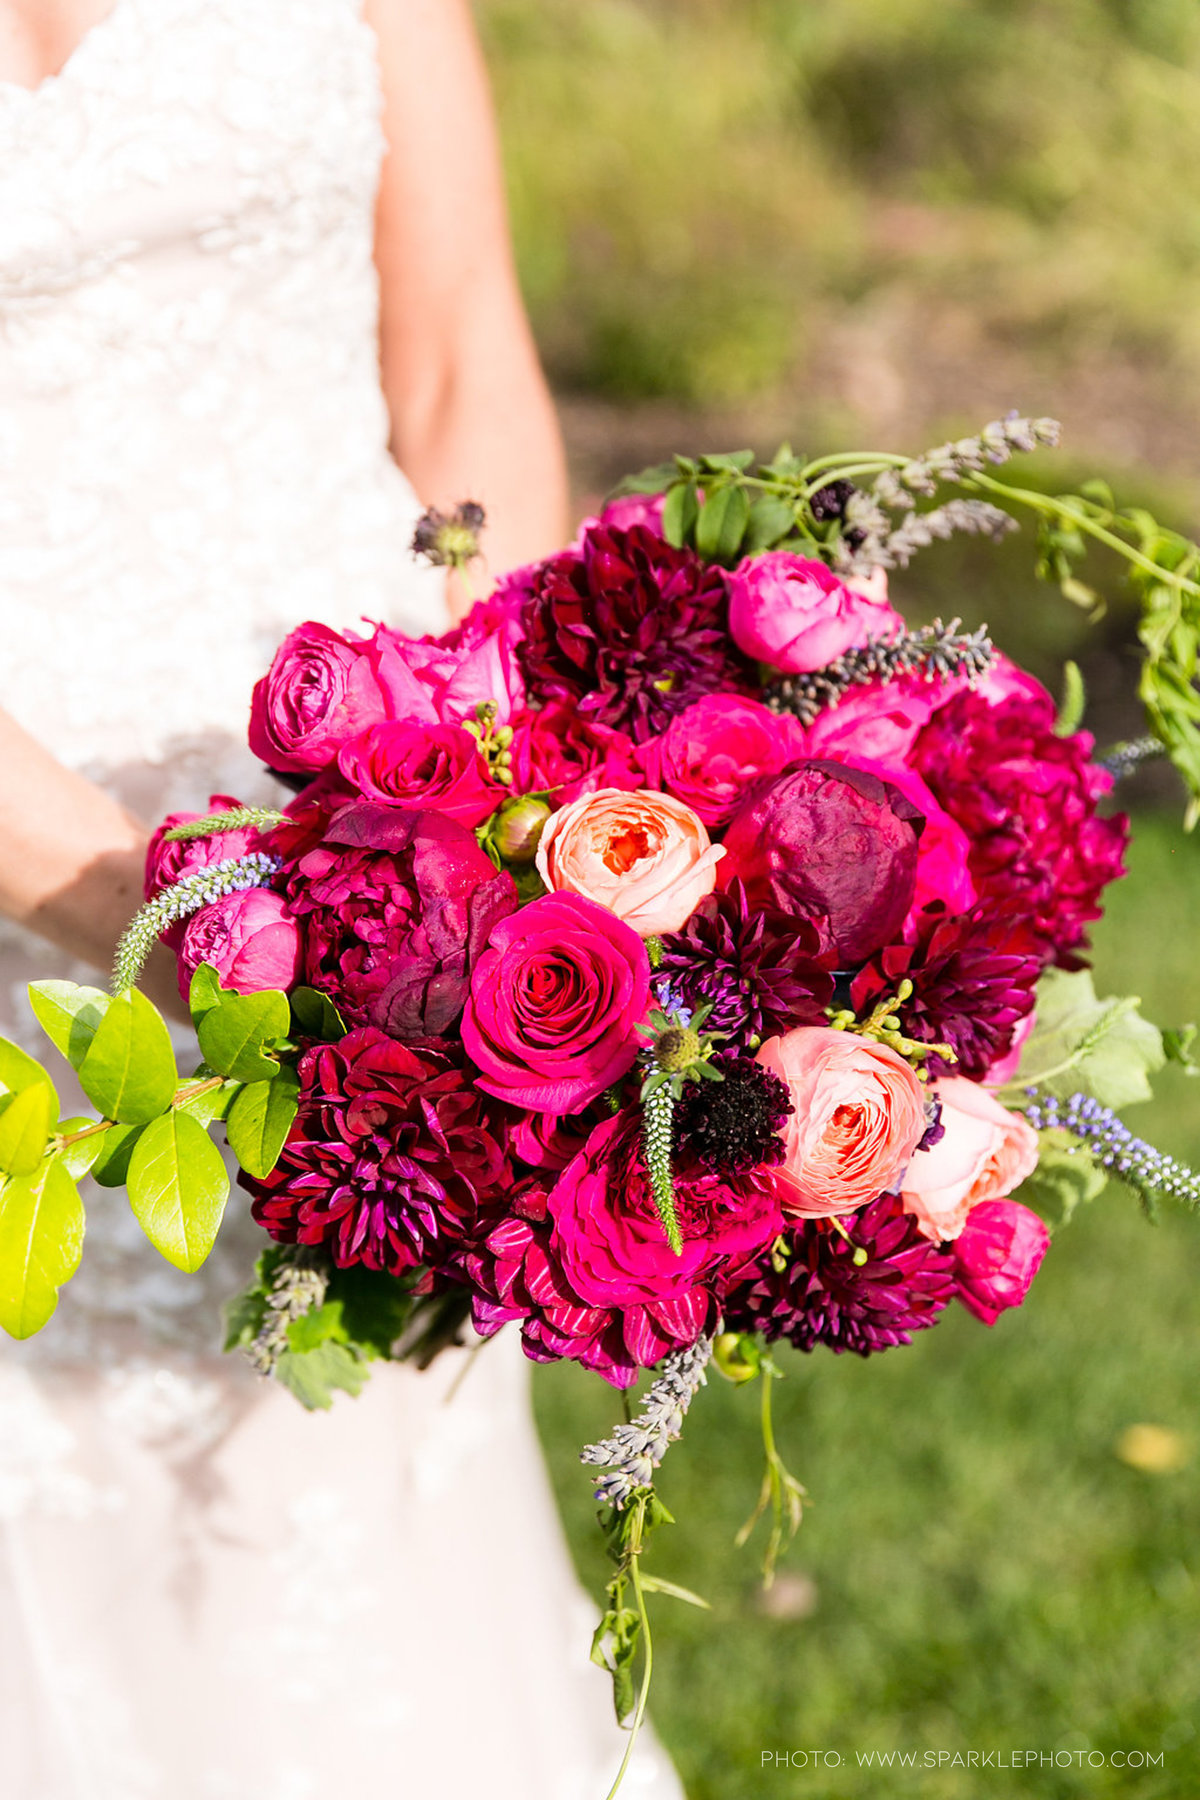 Utah Florist_Summer Weddings in Park City_Colorful Wedding_Luxe Mountain Weddings_Stein Eriksen Lodge Weddings_Artisan Bloom--52